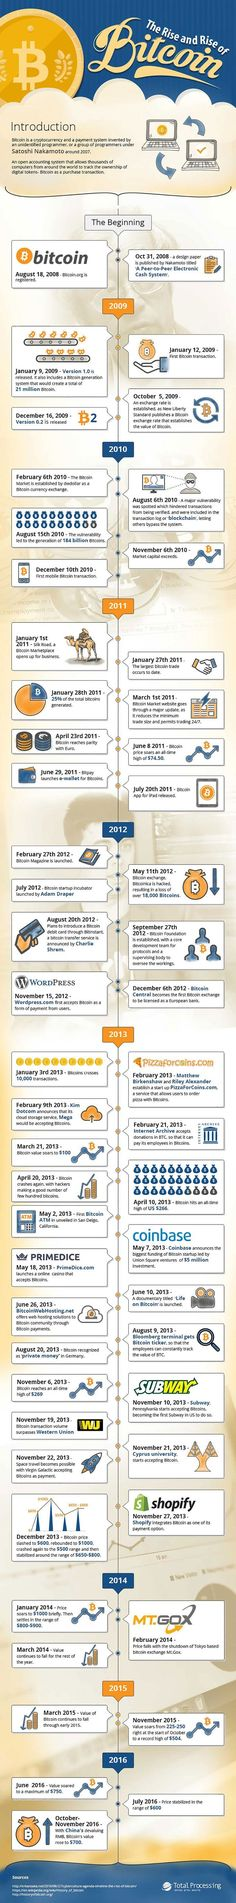 Rise And Shine Of Bitcoin Infographic Topic Digital Currency Mining Blockchain